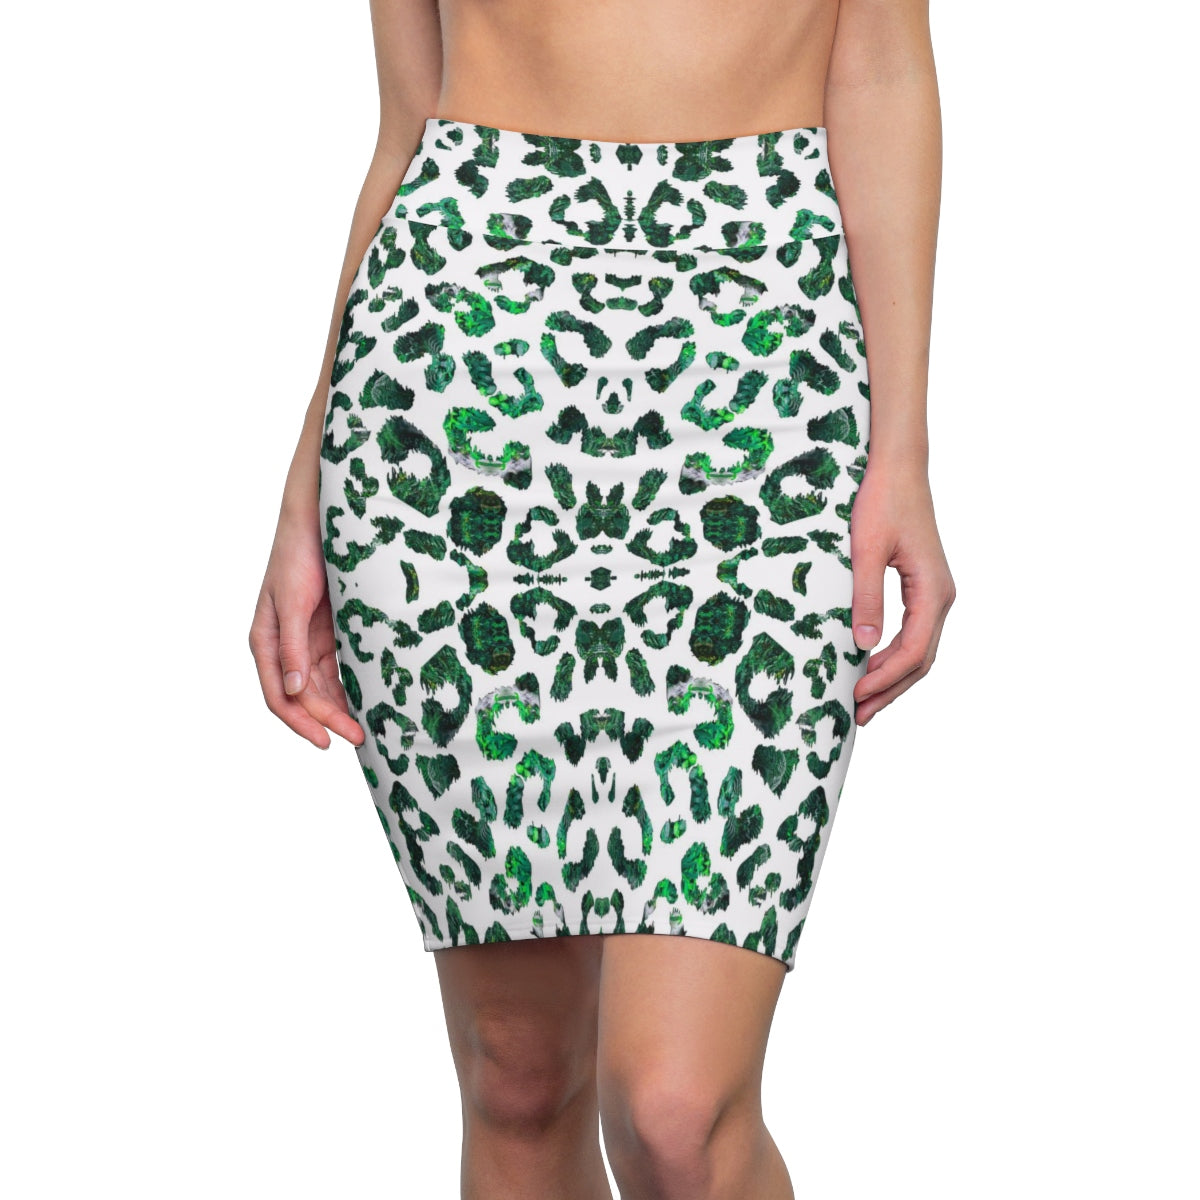 Fiji Islands #0001 (High Waist Skirt)